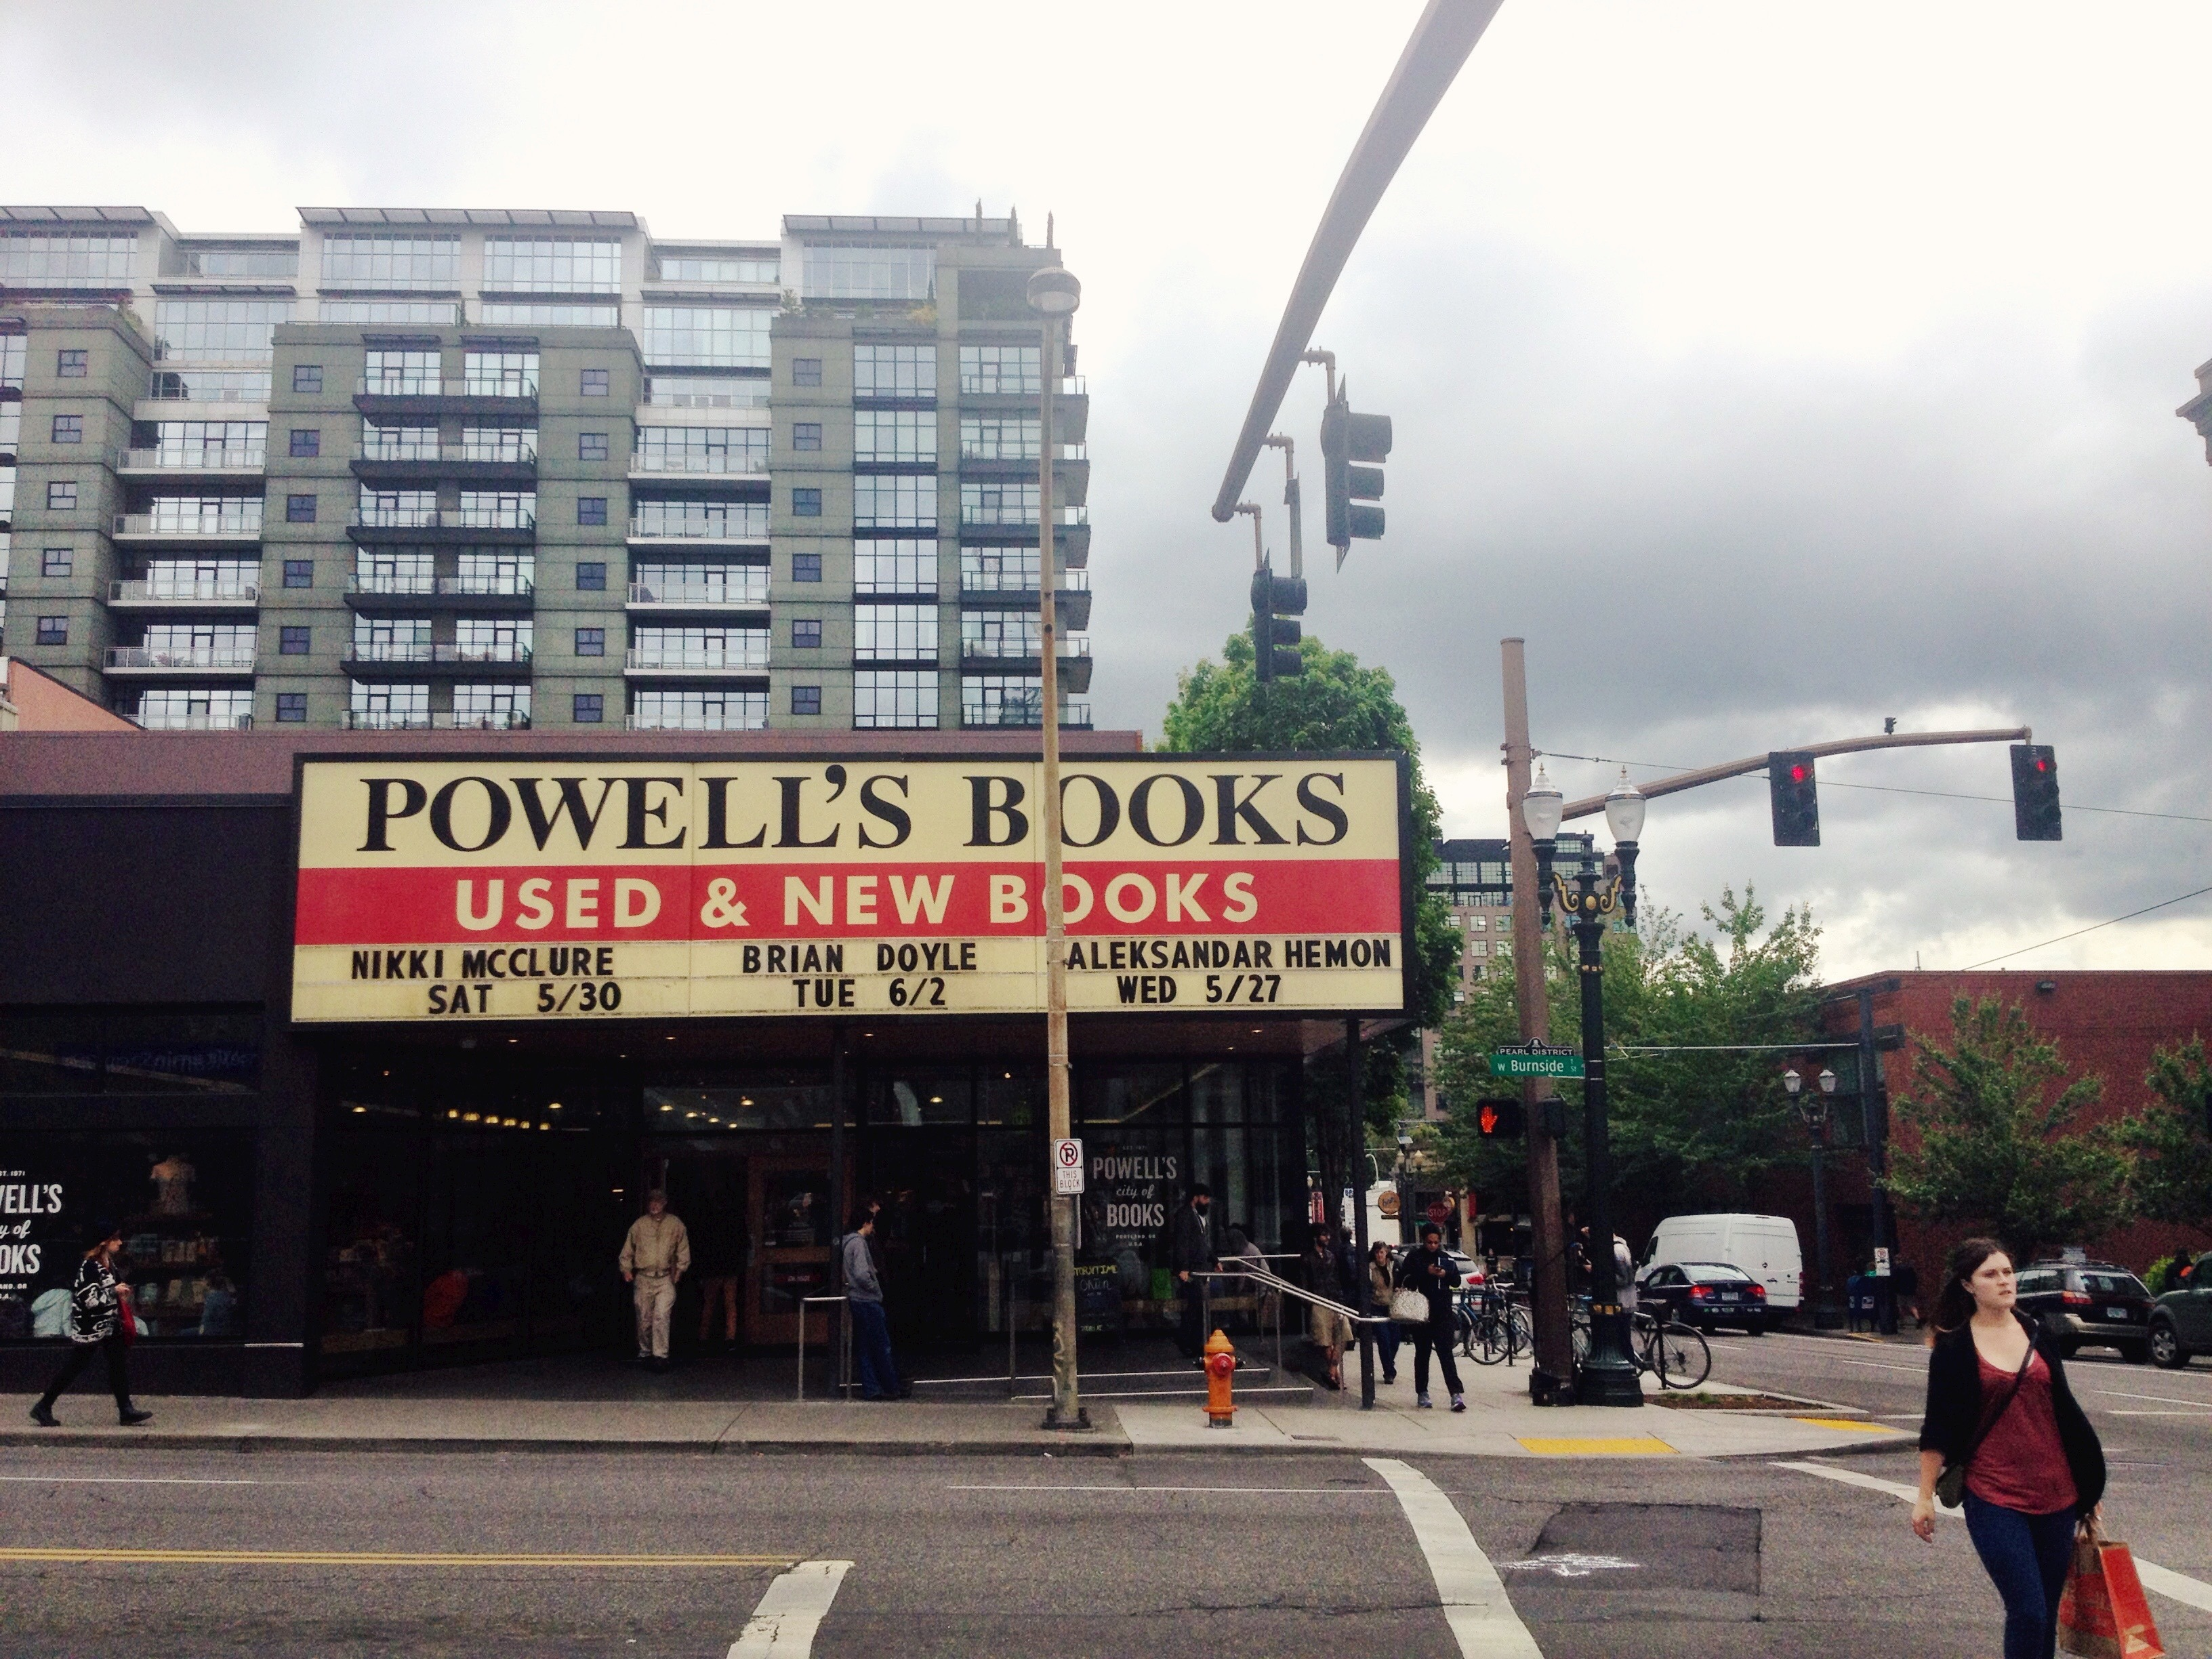 Powell's City of Books - Portland, Oregon